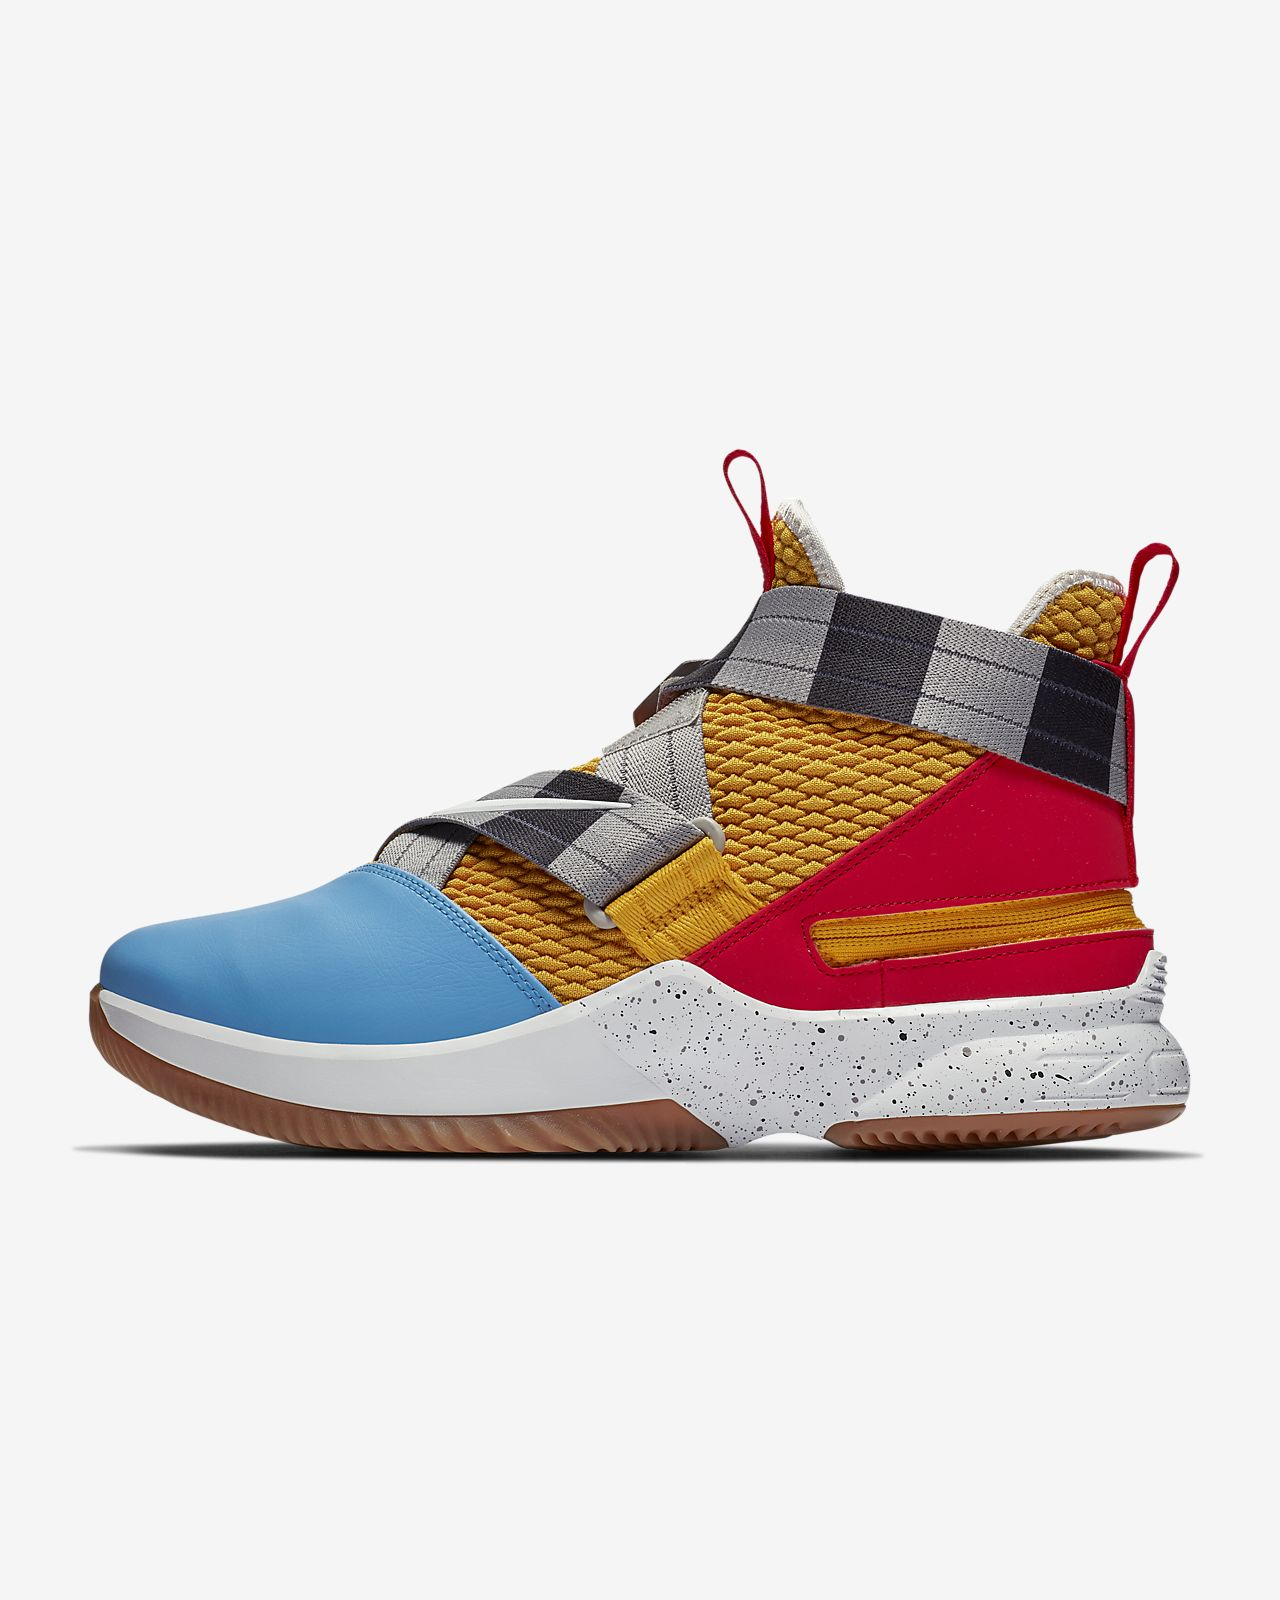 6d0631745a3ab LeBron Soldier 12 FlyEase (Extra-Wide) Men s Basketball Shoe. Nike.com